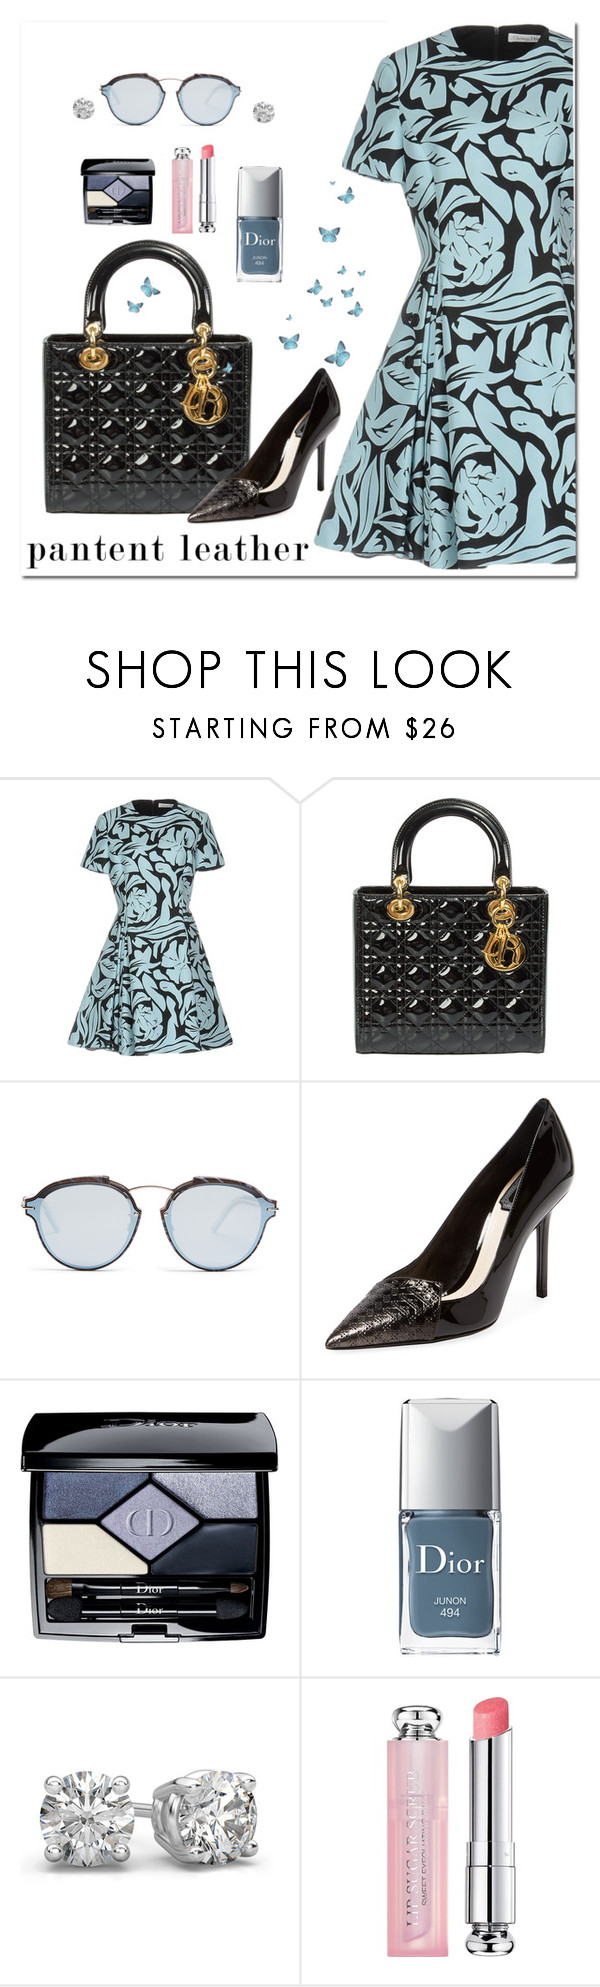 """""""It's Dior Darling!"""" by krusie ❤ liked on Polyvore featuring Christian Dior"""